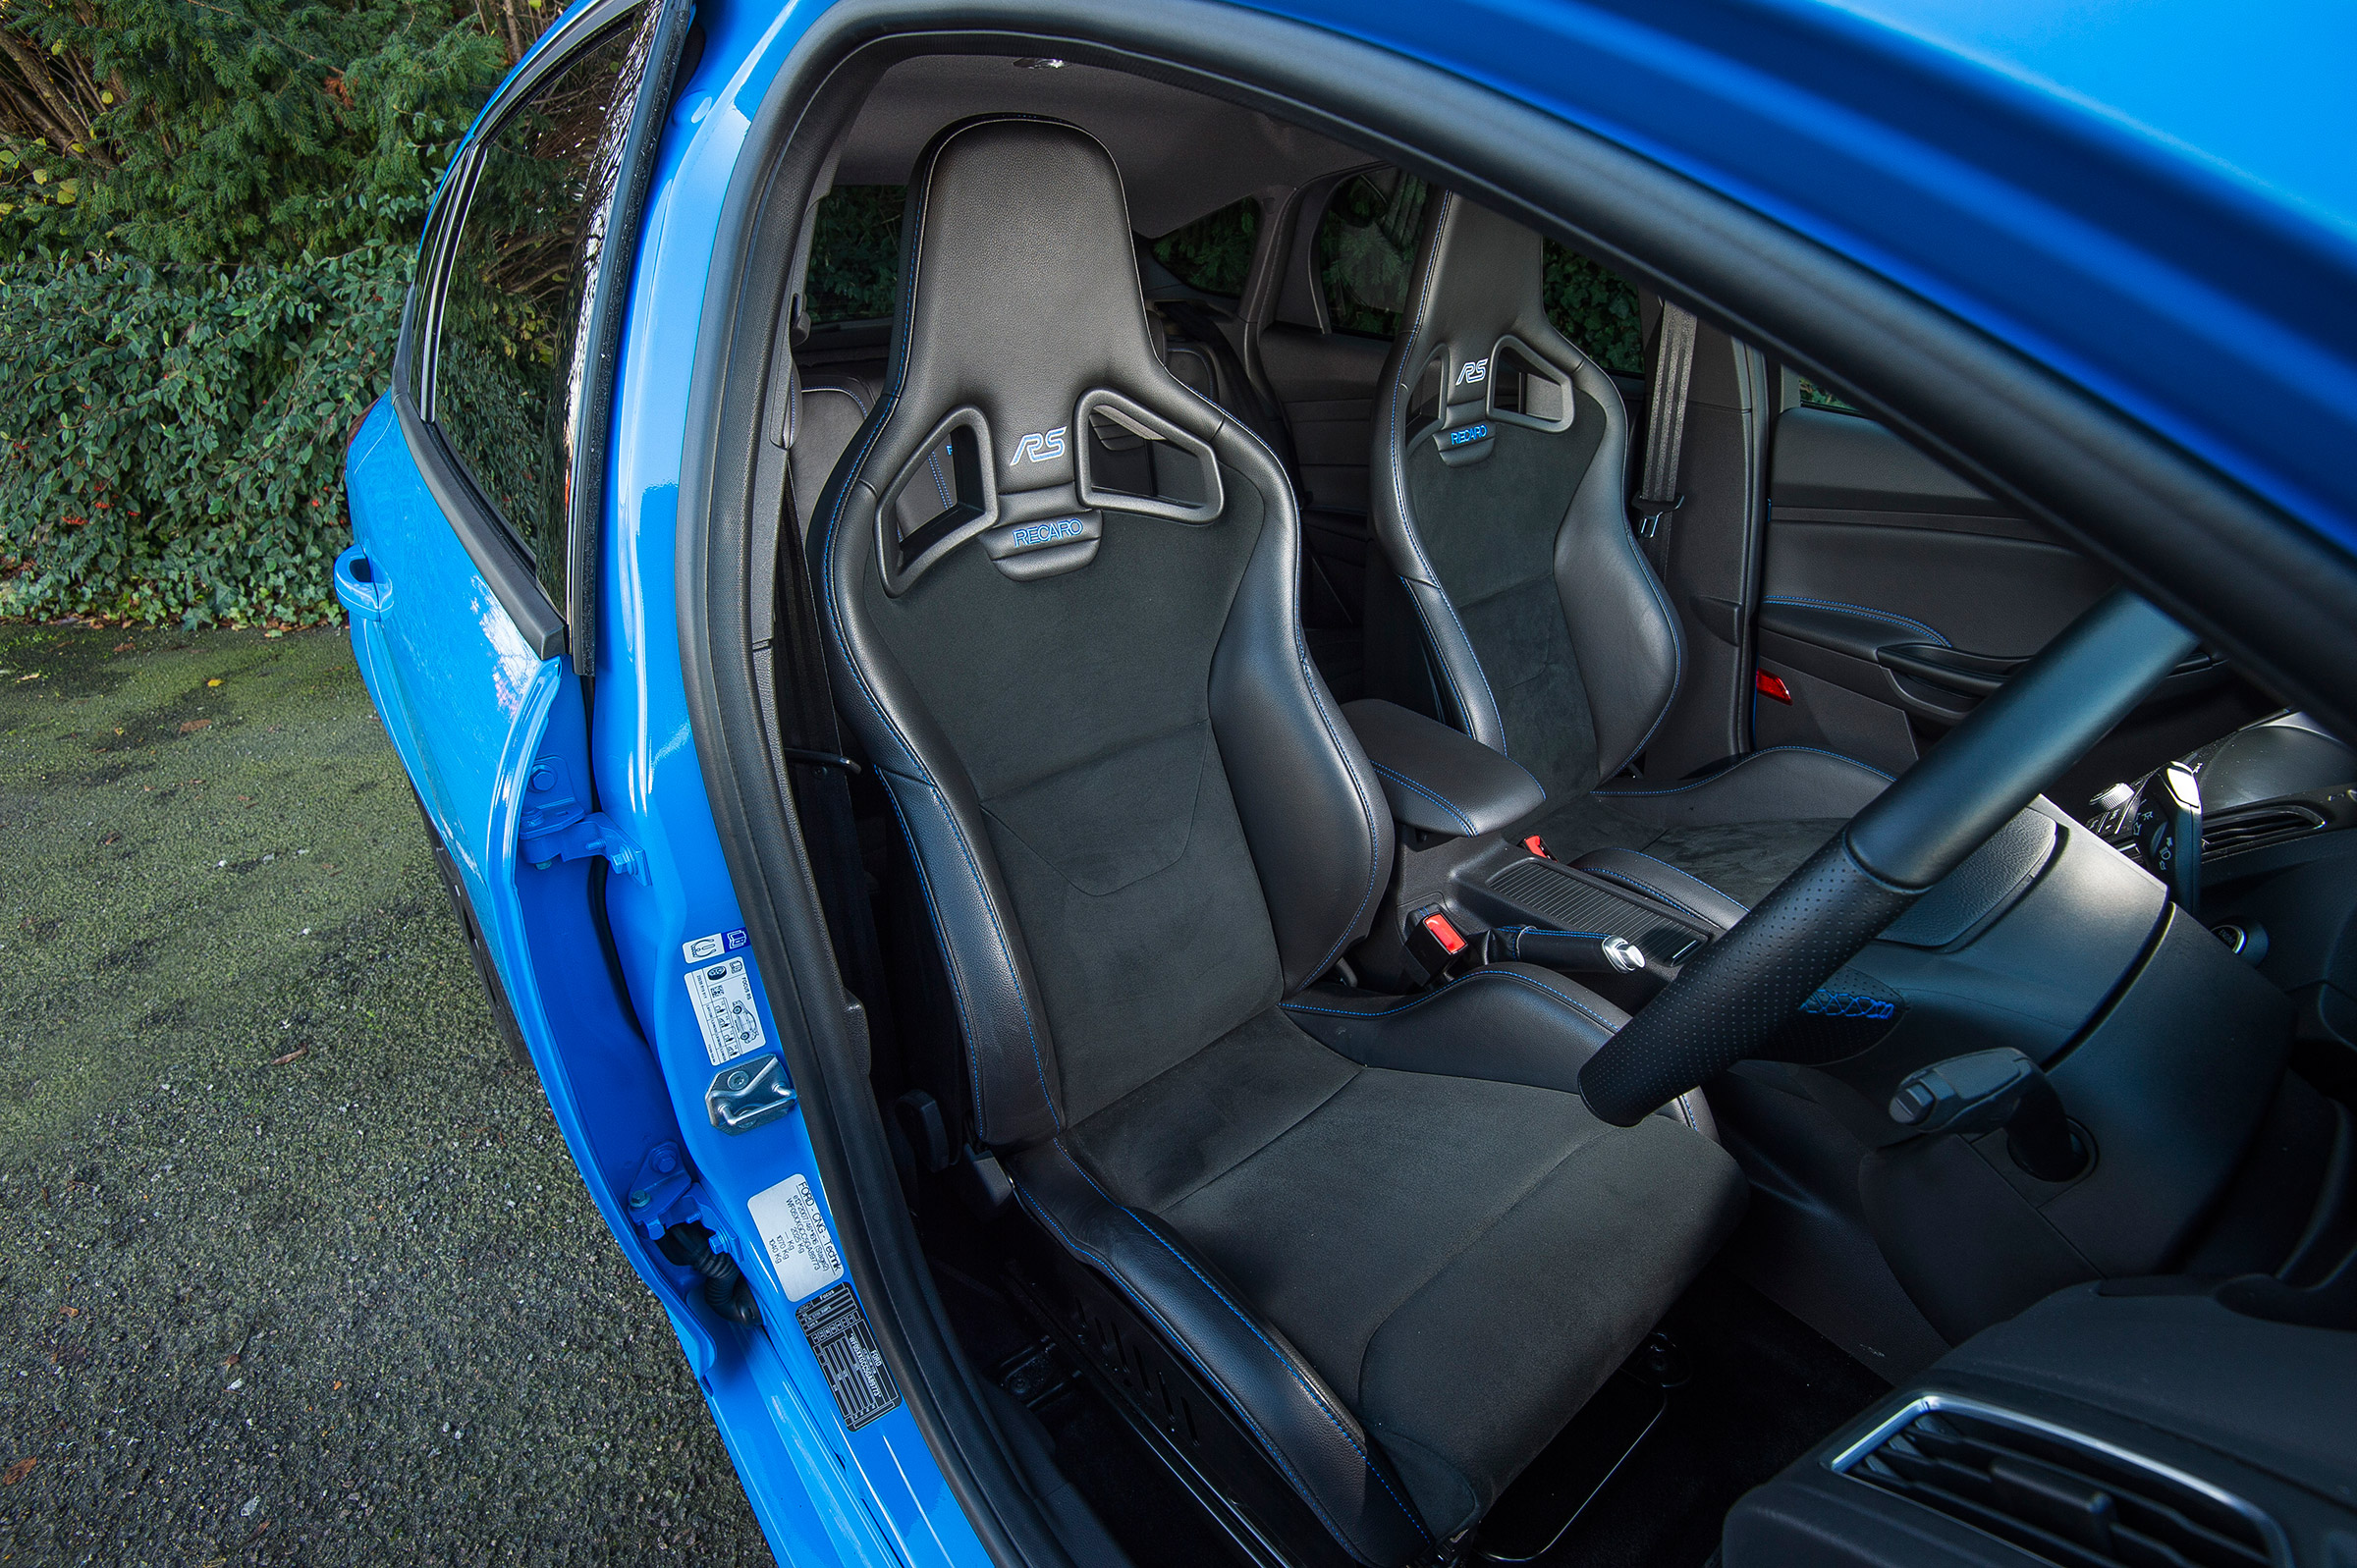 2017 Ford Focus RS Interior Seats Front (View 10 of 23)